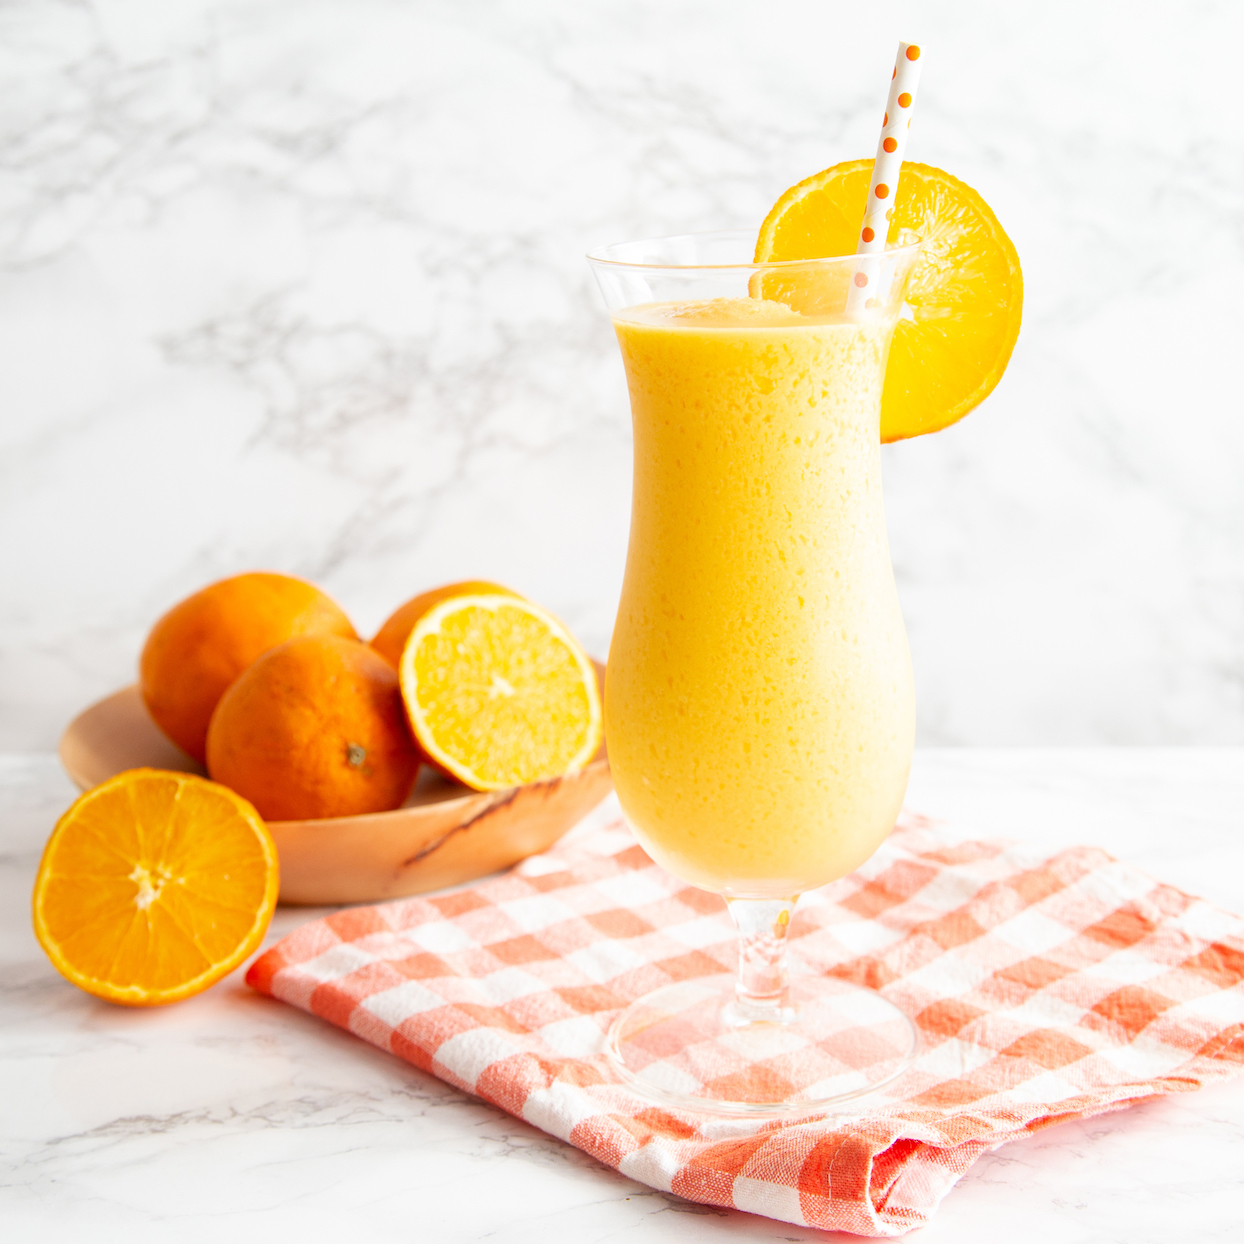 For those of you who always loved to run to the curb to buy a little bit of summer on a stick, this drink is right up your alley. The secret to the straight-from-the-ice-cream truck taste of this creamy frozen treat? Double the fruit! A little bit of frozen mango helps thicken the drink naturally in the blender while boosting the juicy flavor of fresh orange juice. Unsweetened vanilla coconut milk brings just a hint of sweetness while keeping this added-sugar-free and vegan. You could also use a sweetened coconut milk if you prefer a little more sweetness. Enjoy this refreshing and nostalgic drink on its own, or add a splash of your favorite vodka or rum for a summer happy hour indulgence. P.S.: Unlike the ice cream version, this one travels well in an insulated cup if you want to take it poolside! Source: EatingWell.com, June 2020